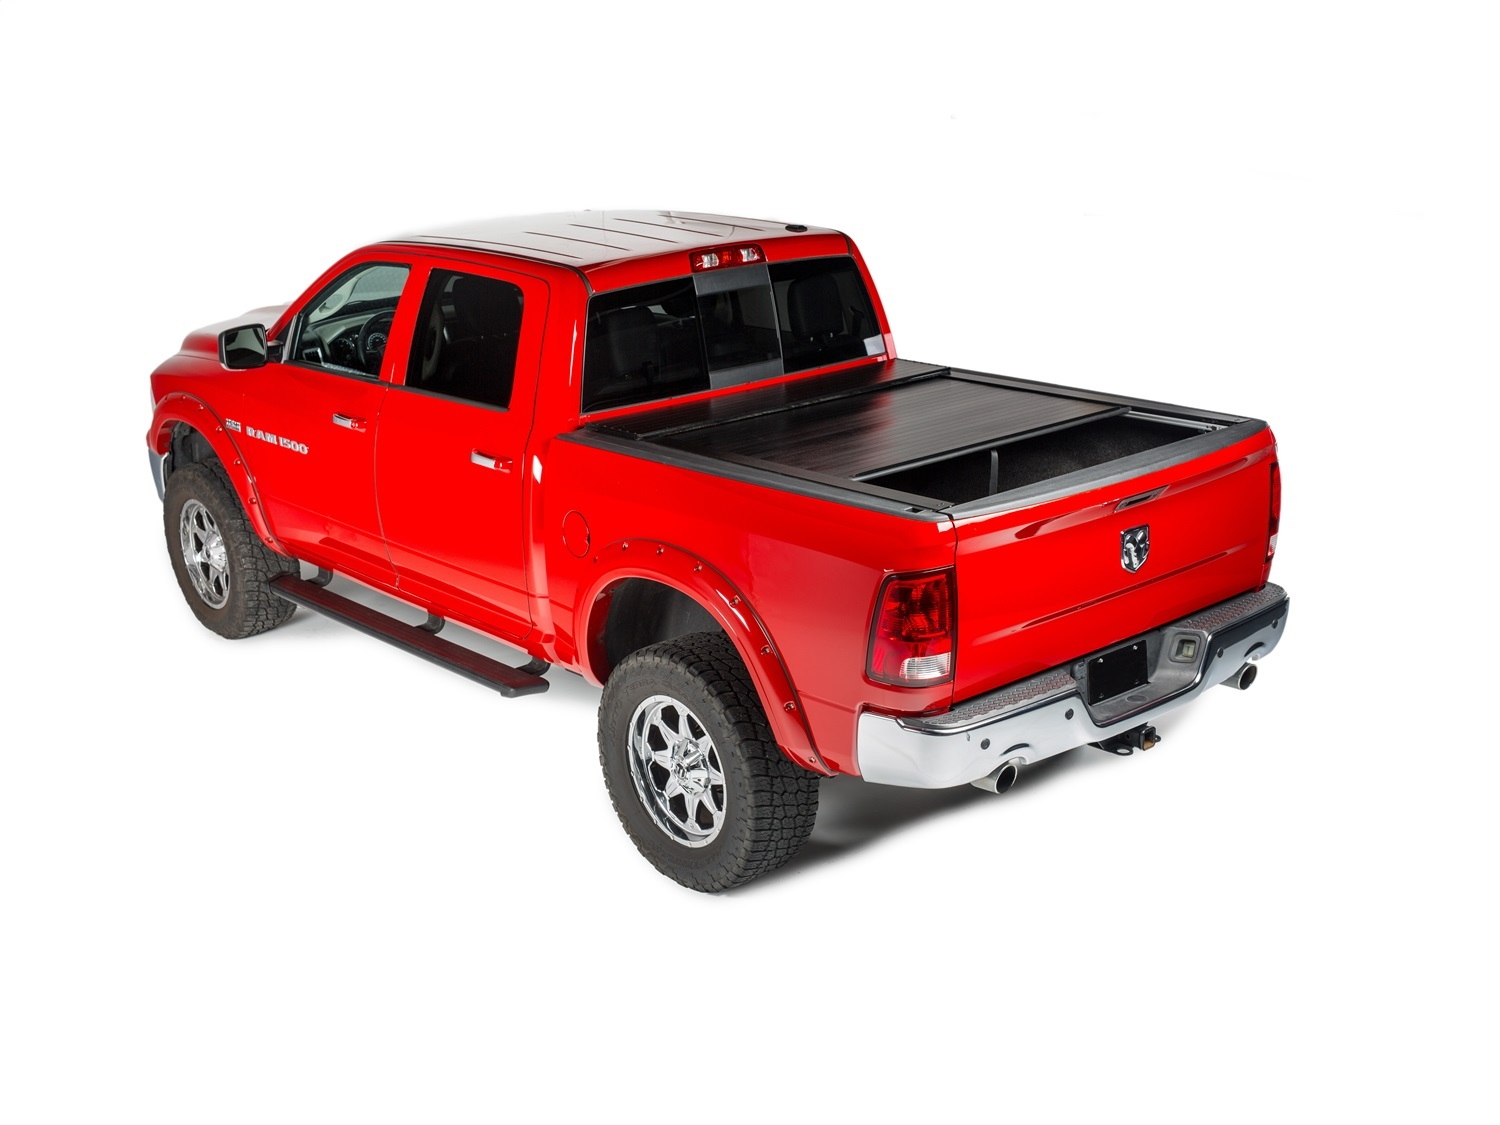 truck access tonneau cover in roll bed series m plus n covers retractable lock tucson